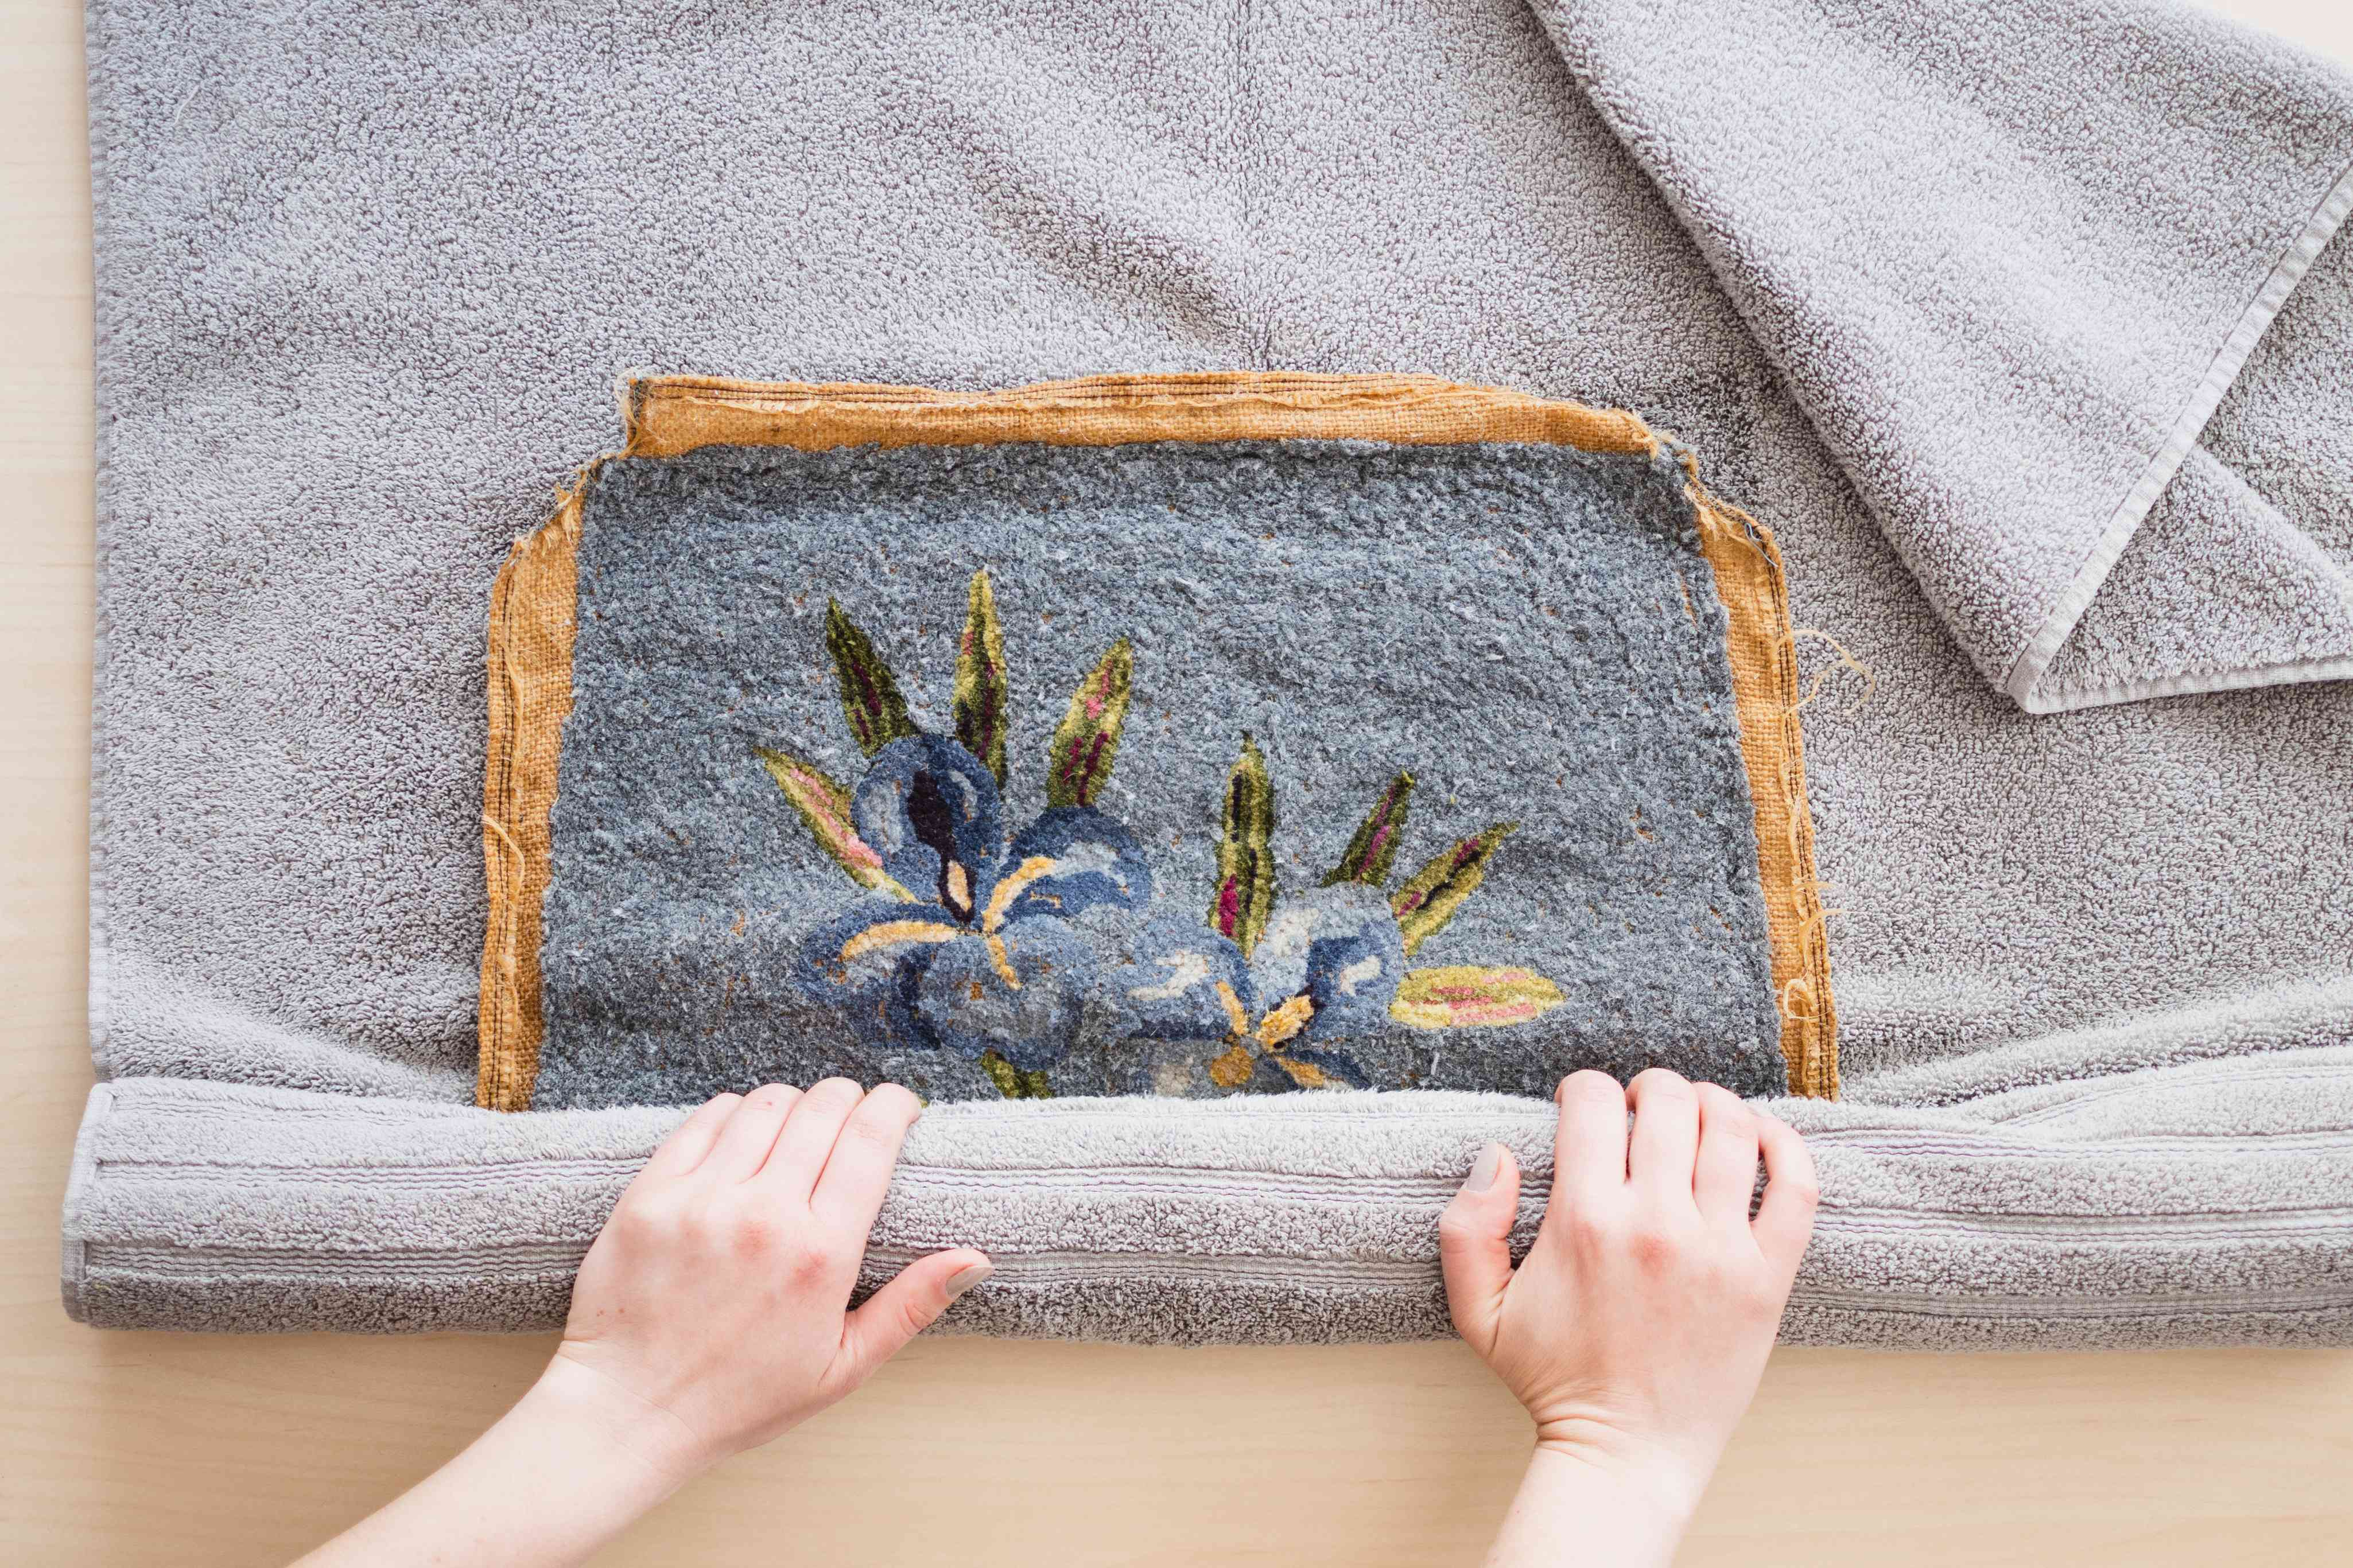 Needle point art piece rolled into gray towel to dry